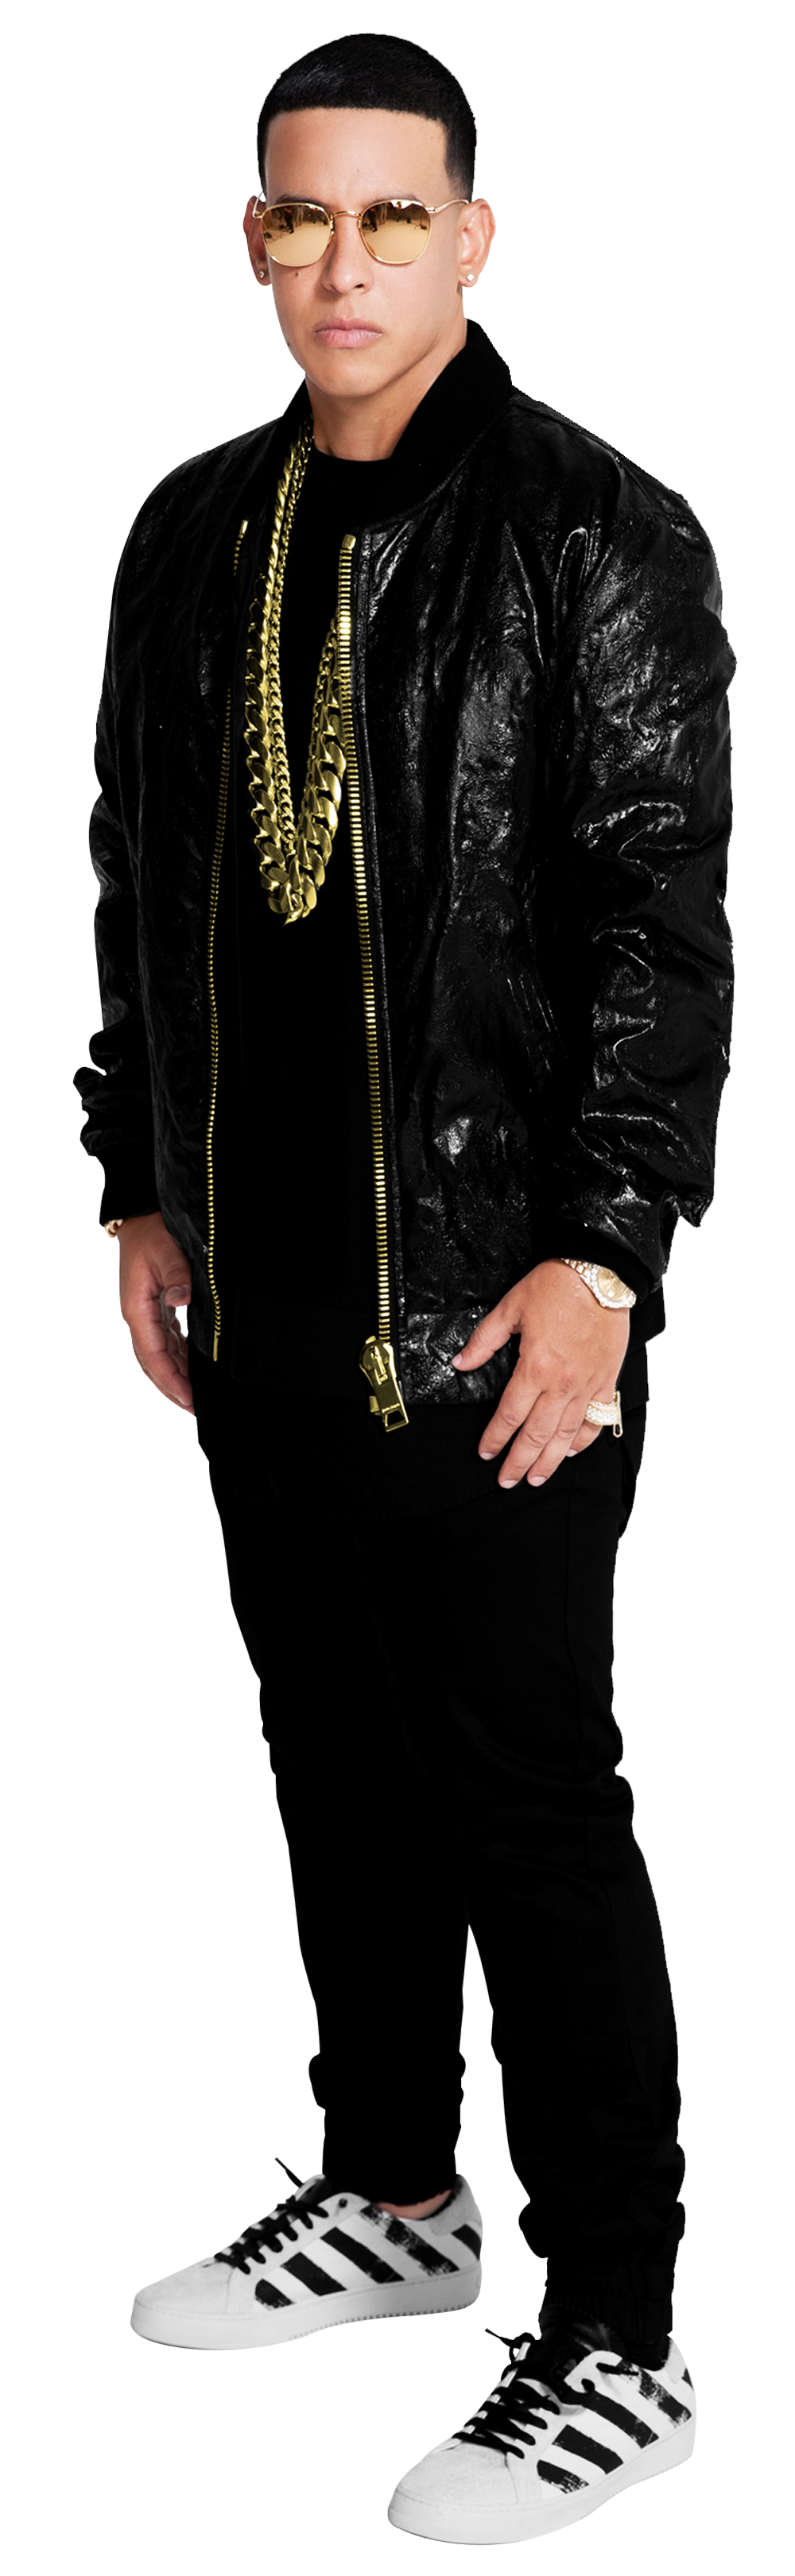 Guapoo Daddy Yankee The Big Boss Daddy